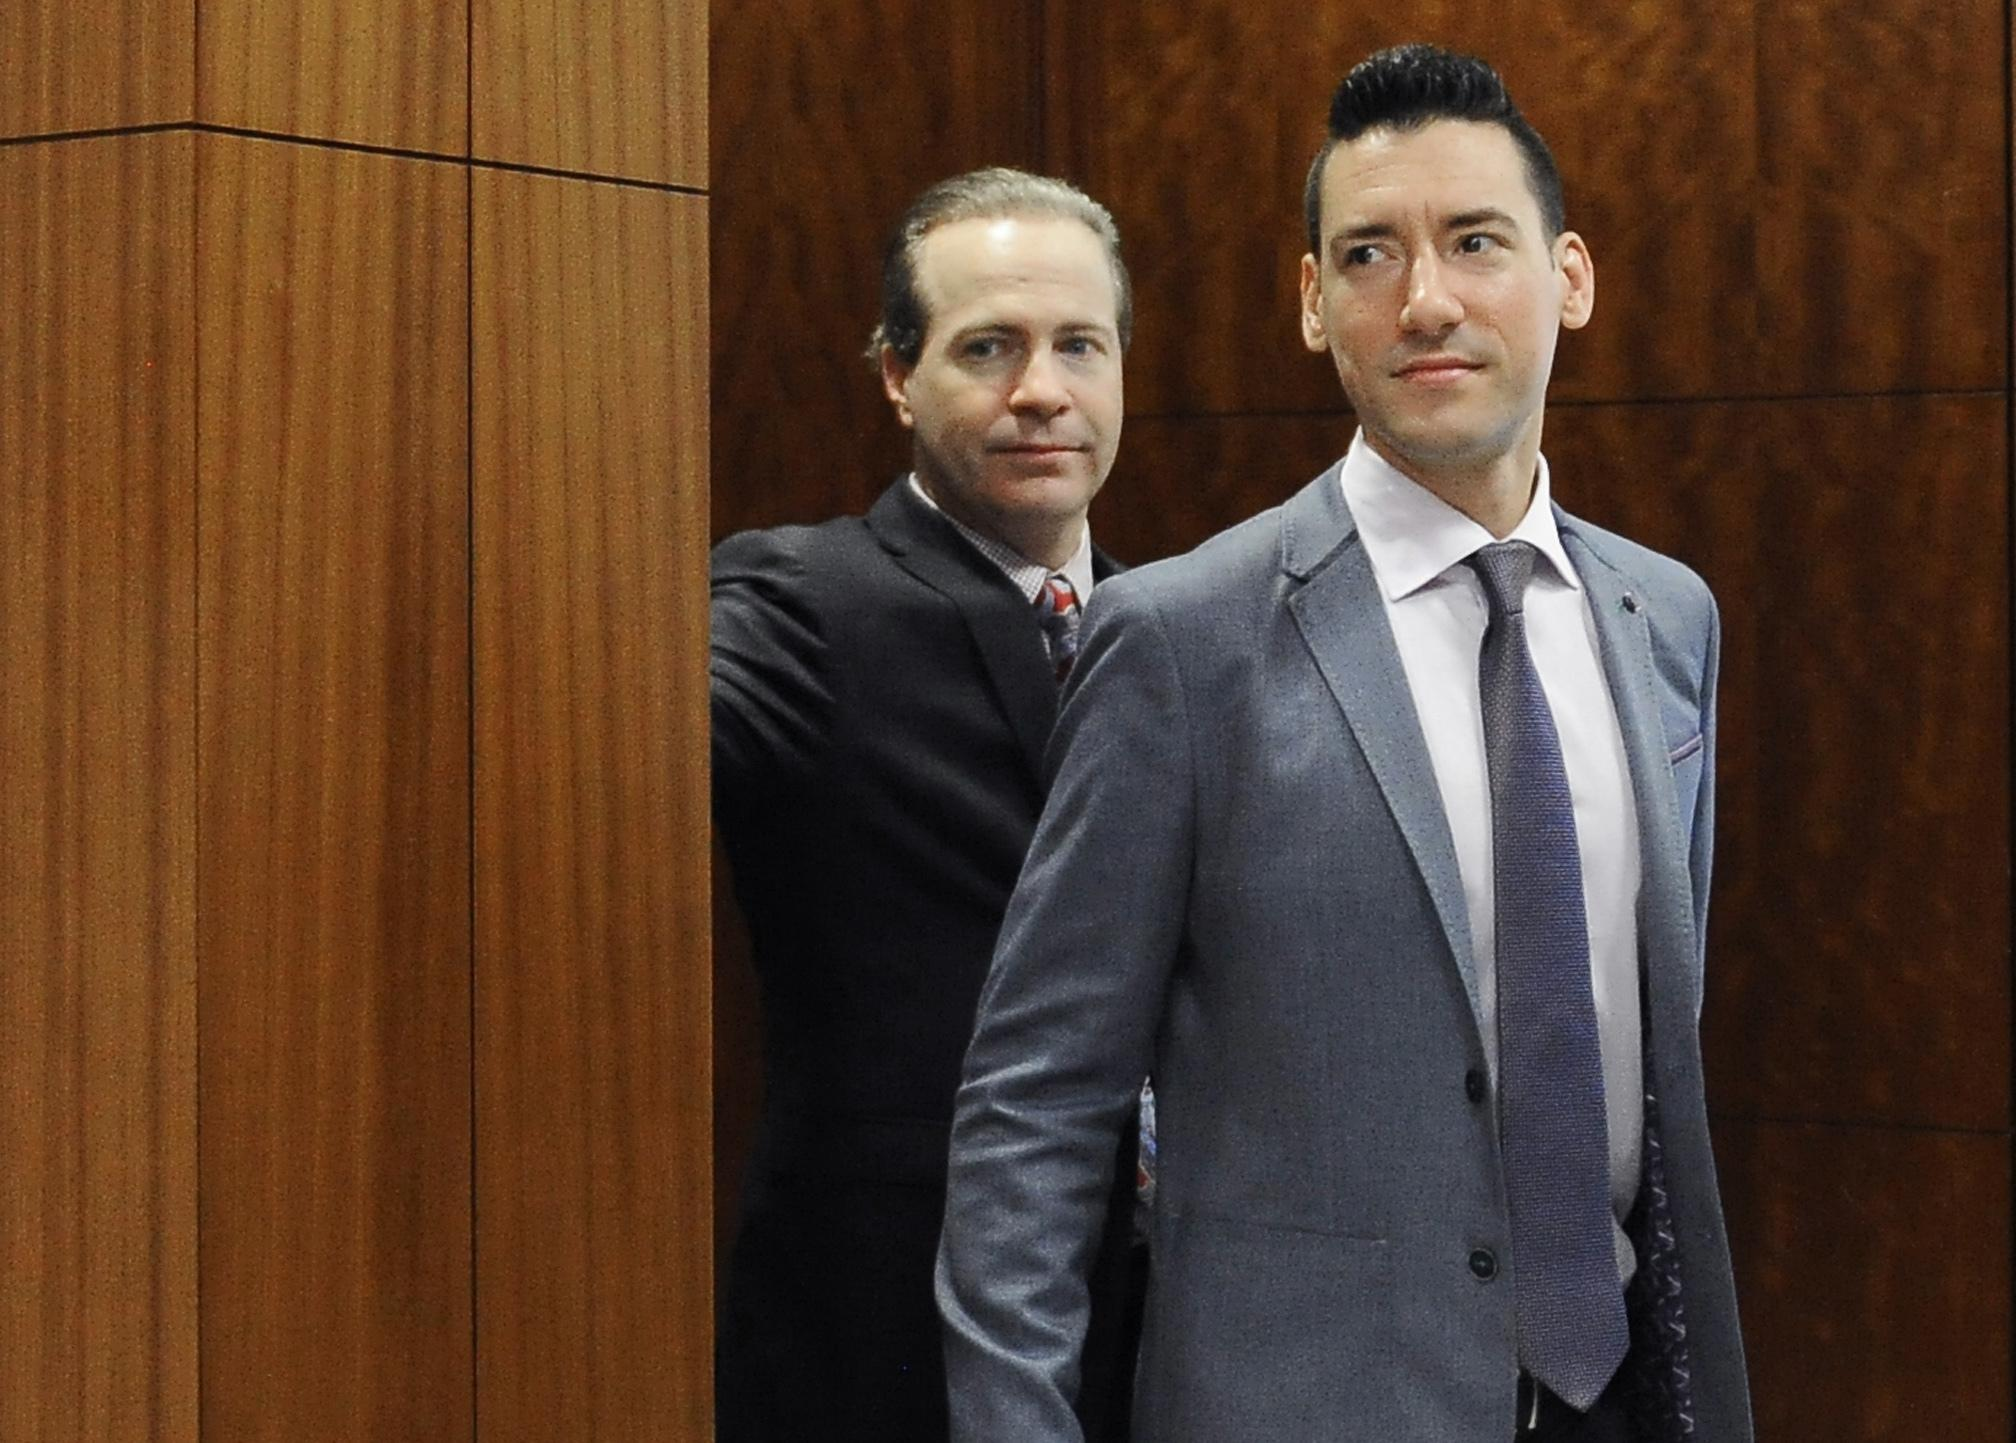 David Daleiden, Sandra Merritt charged in filming at Planned Parenthood